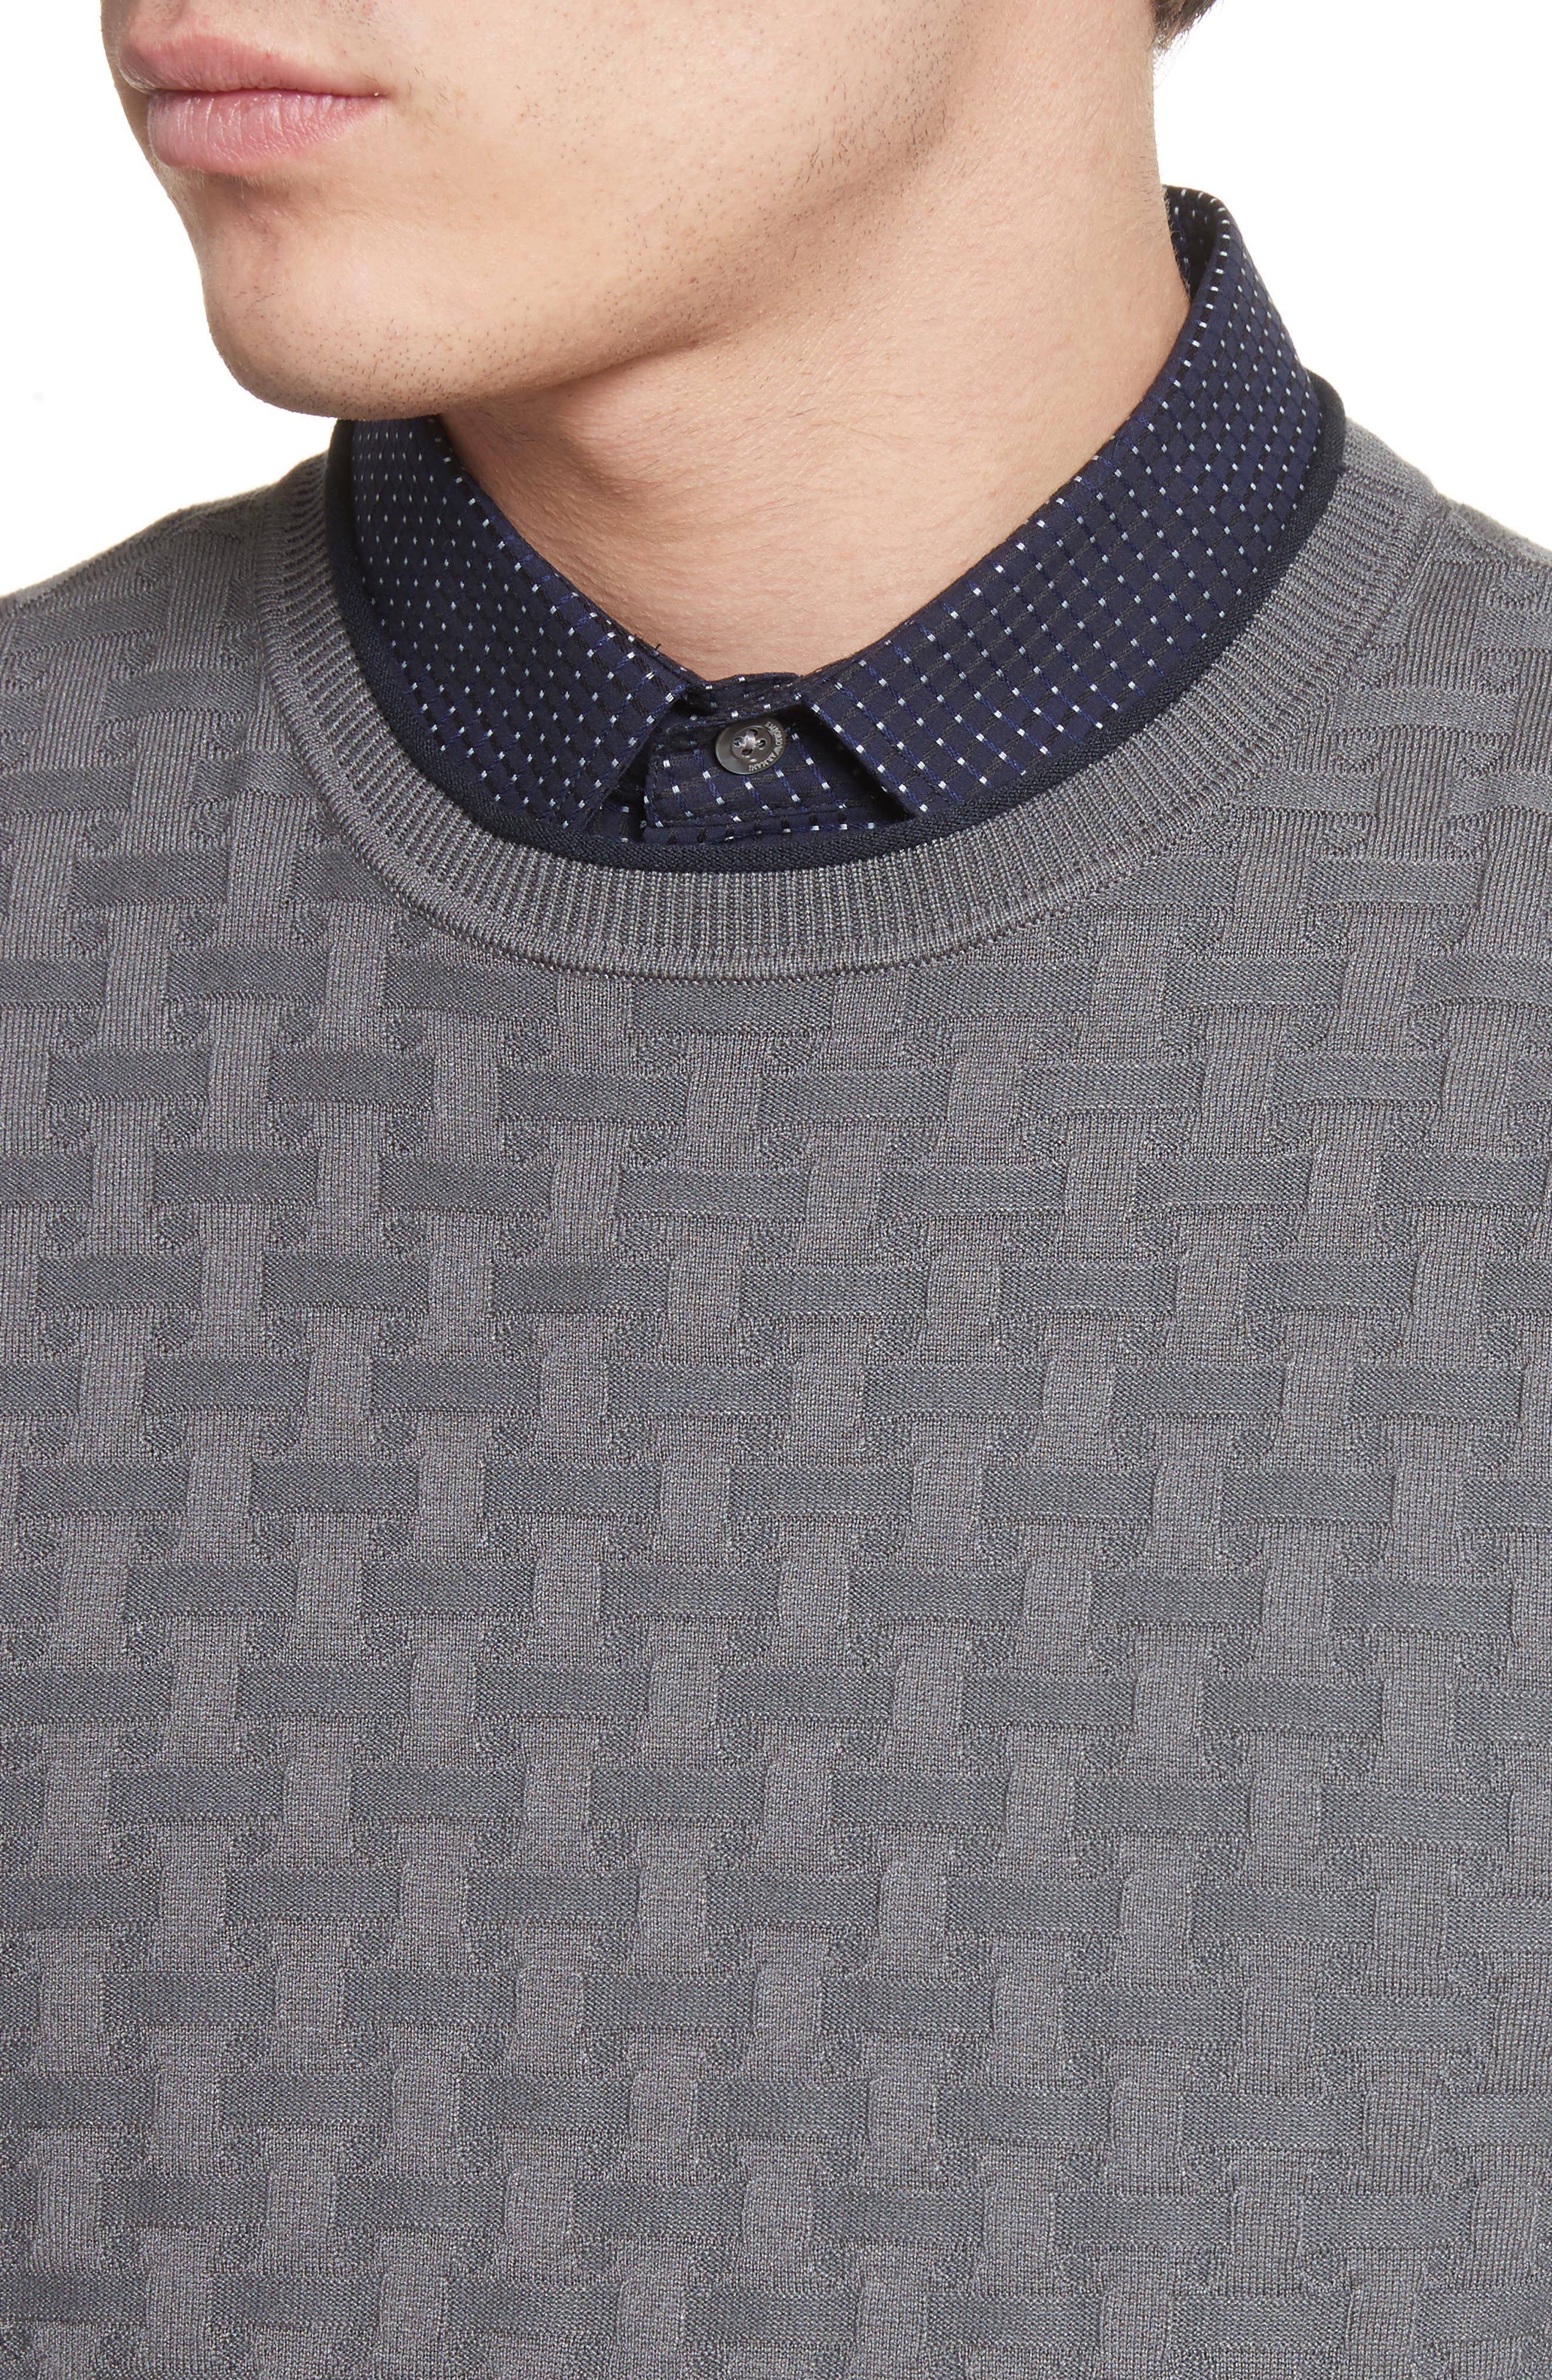 Slim Fit Woven Links Sweater,                             Alternate thumbnail 4, color,                             034